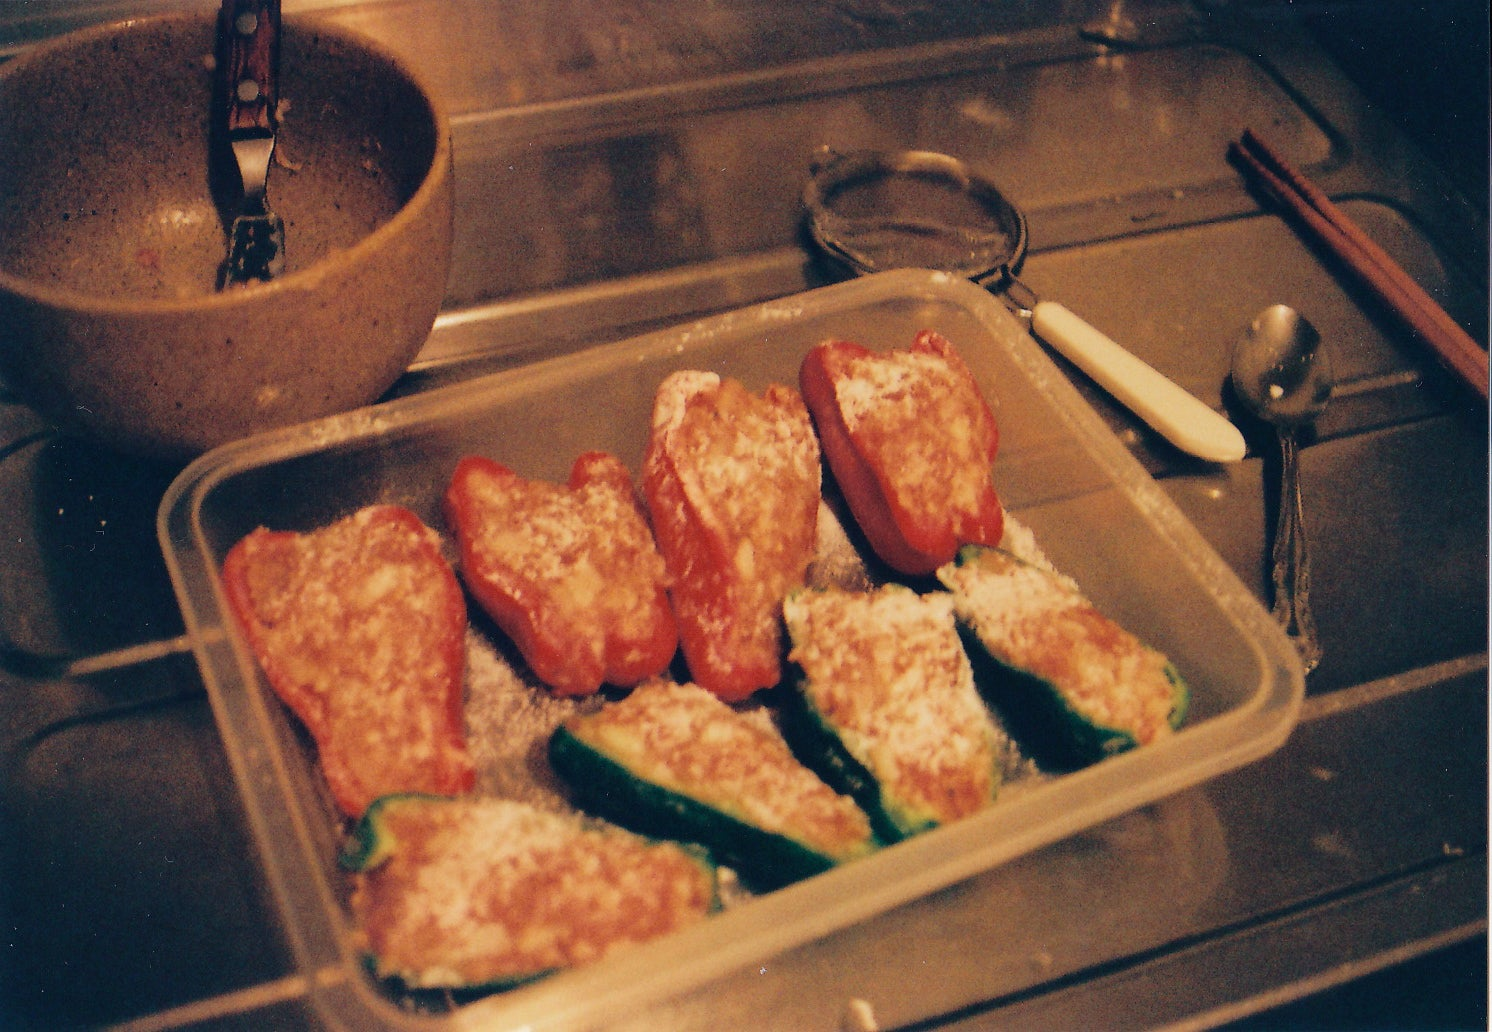 How To Make Delicious 'No-Recipe' Stuffed Vegetables